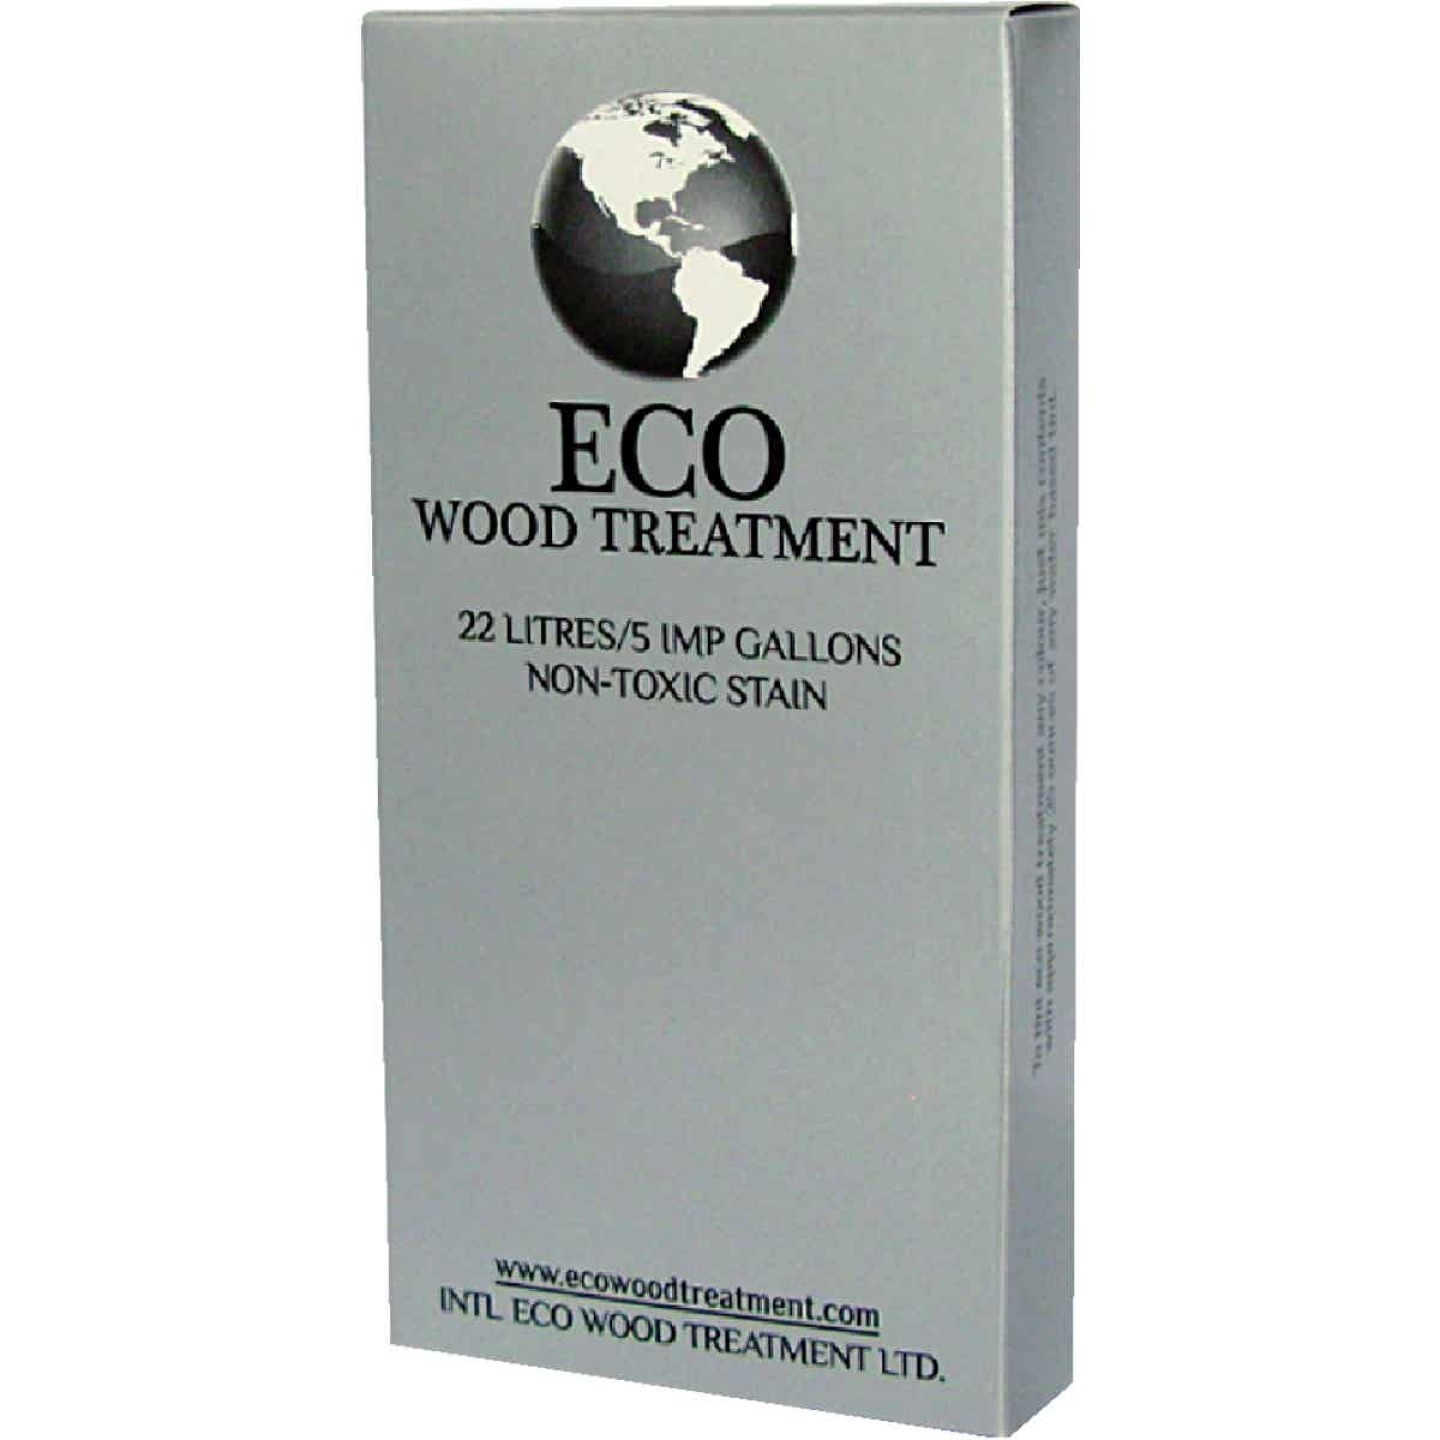 Eco Wood Treatment Exterior Wood Stain & Preservative, 5 Gal. Image 1